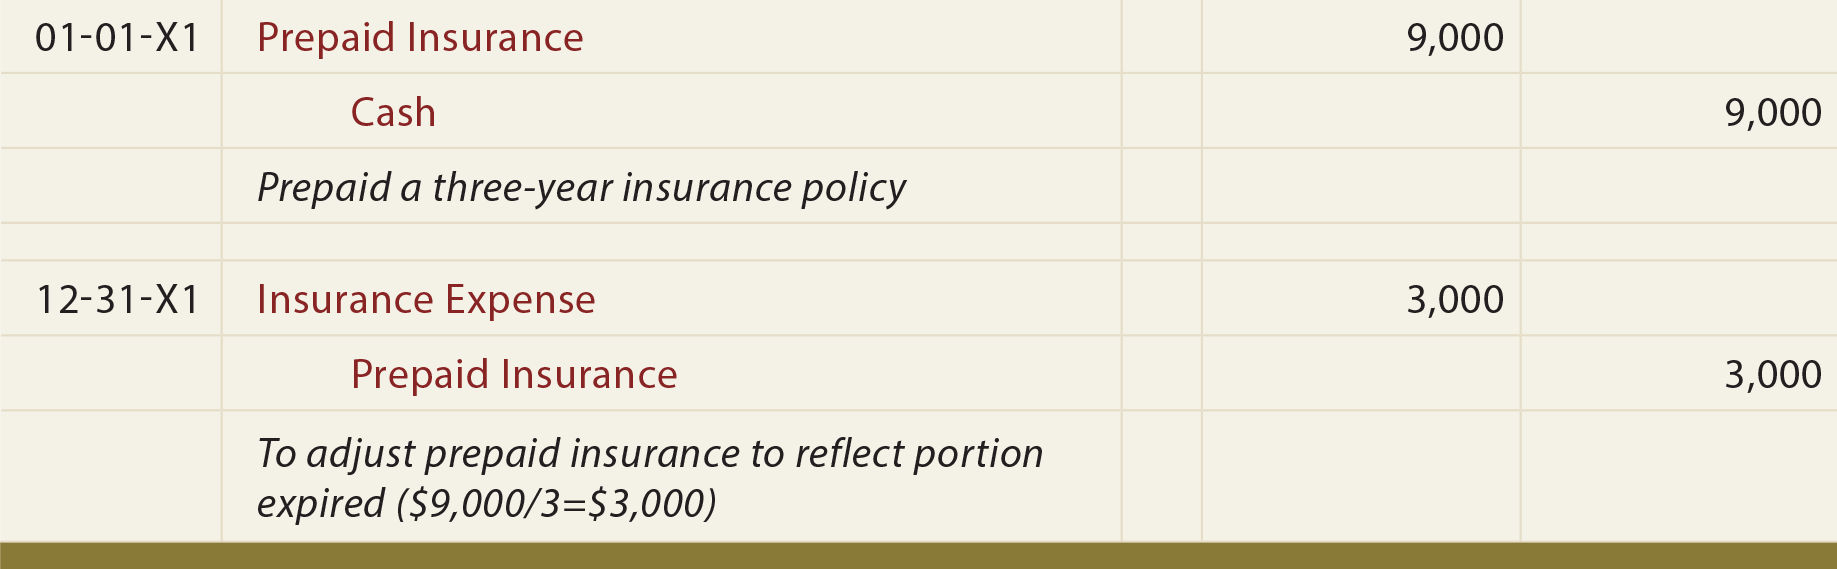 Insurance Premium Journal Entry